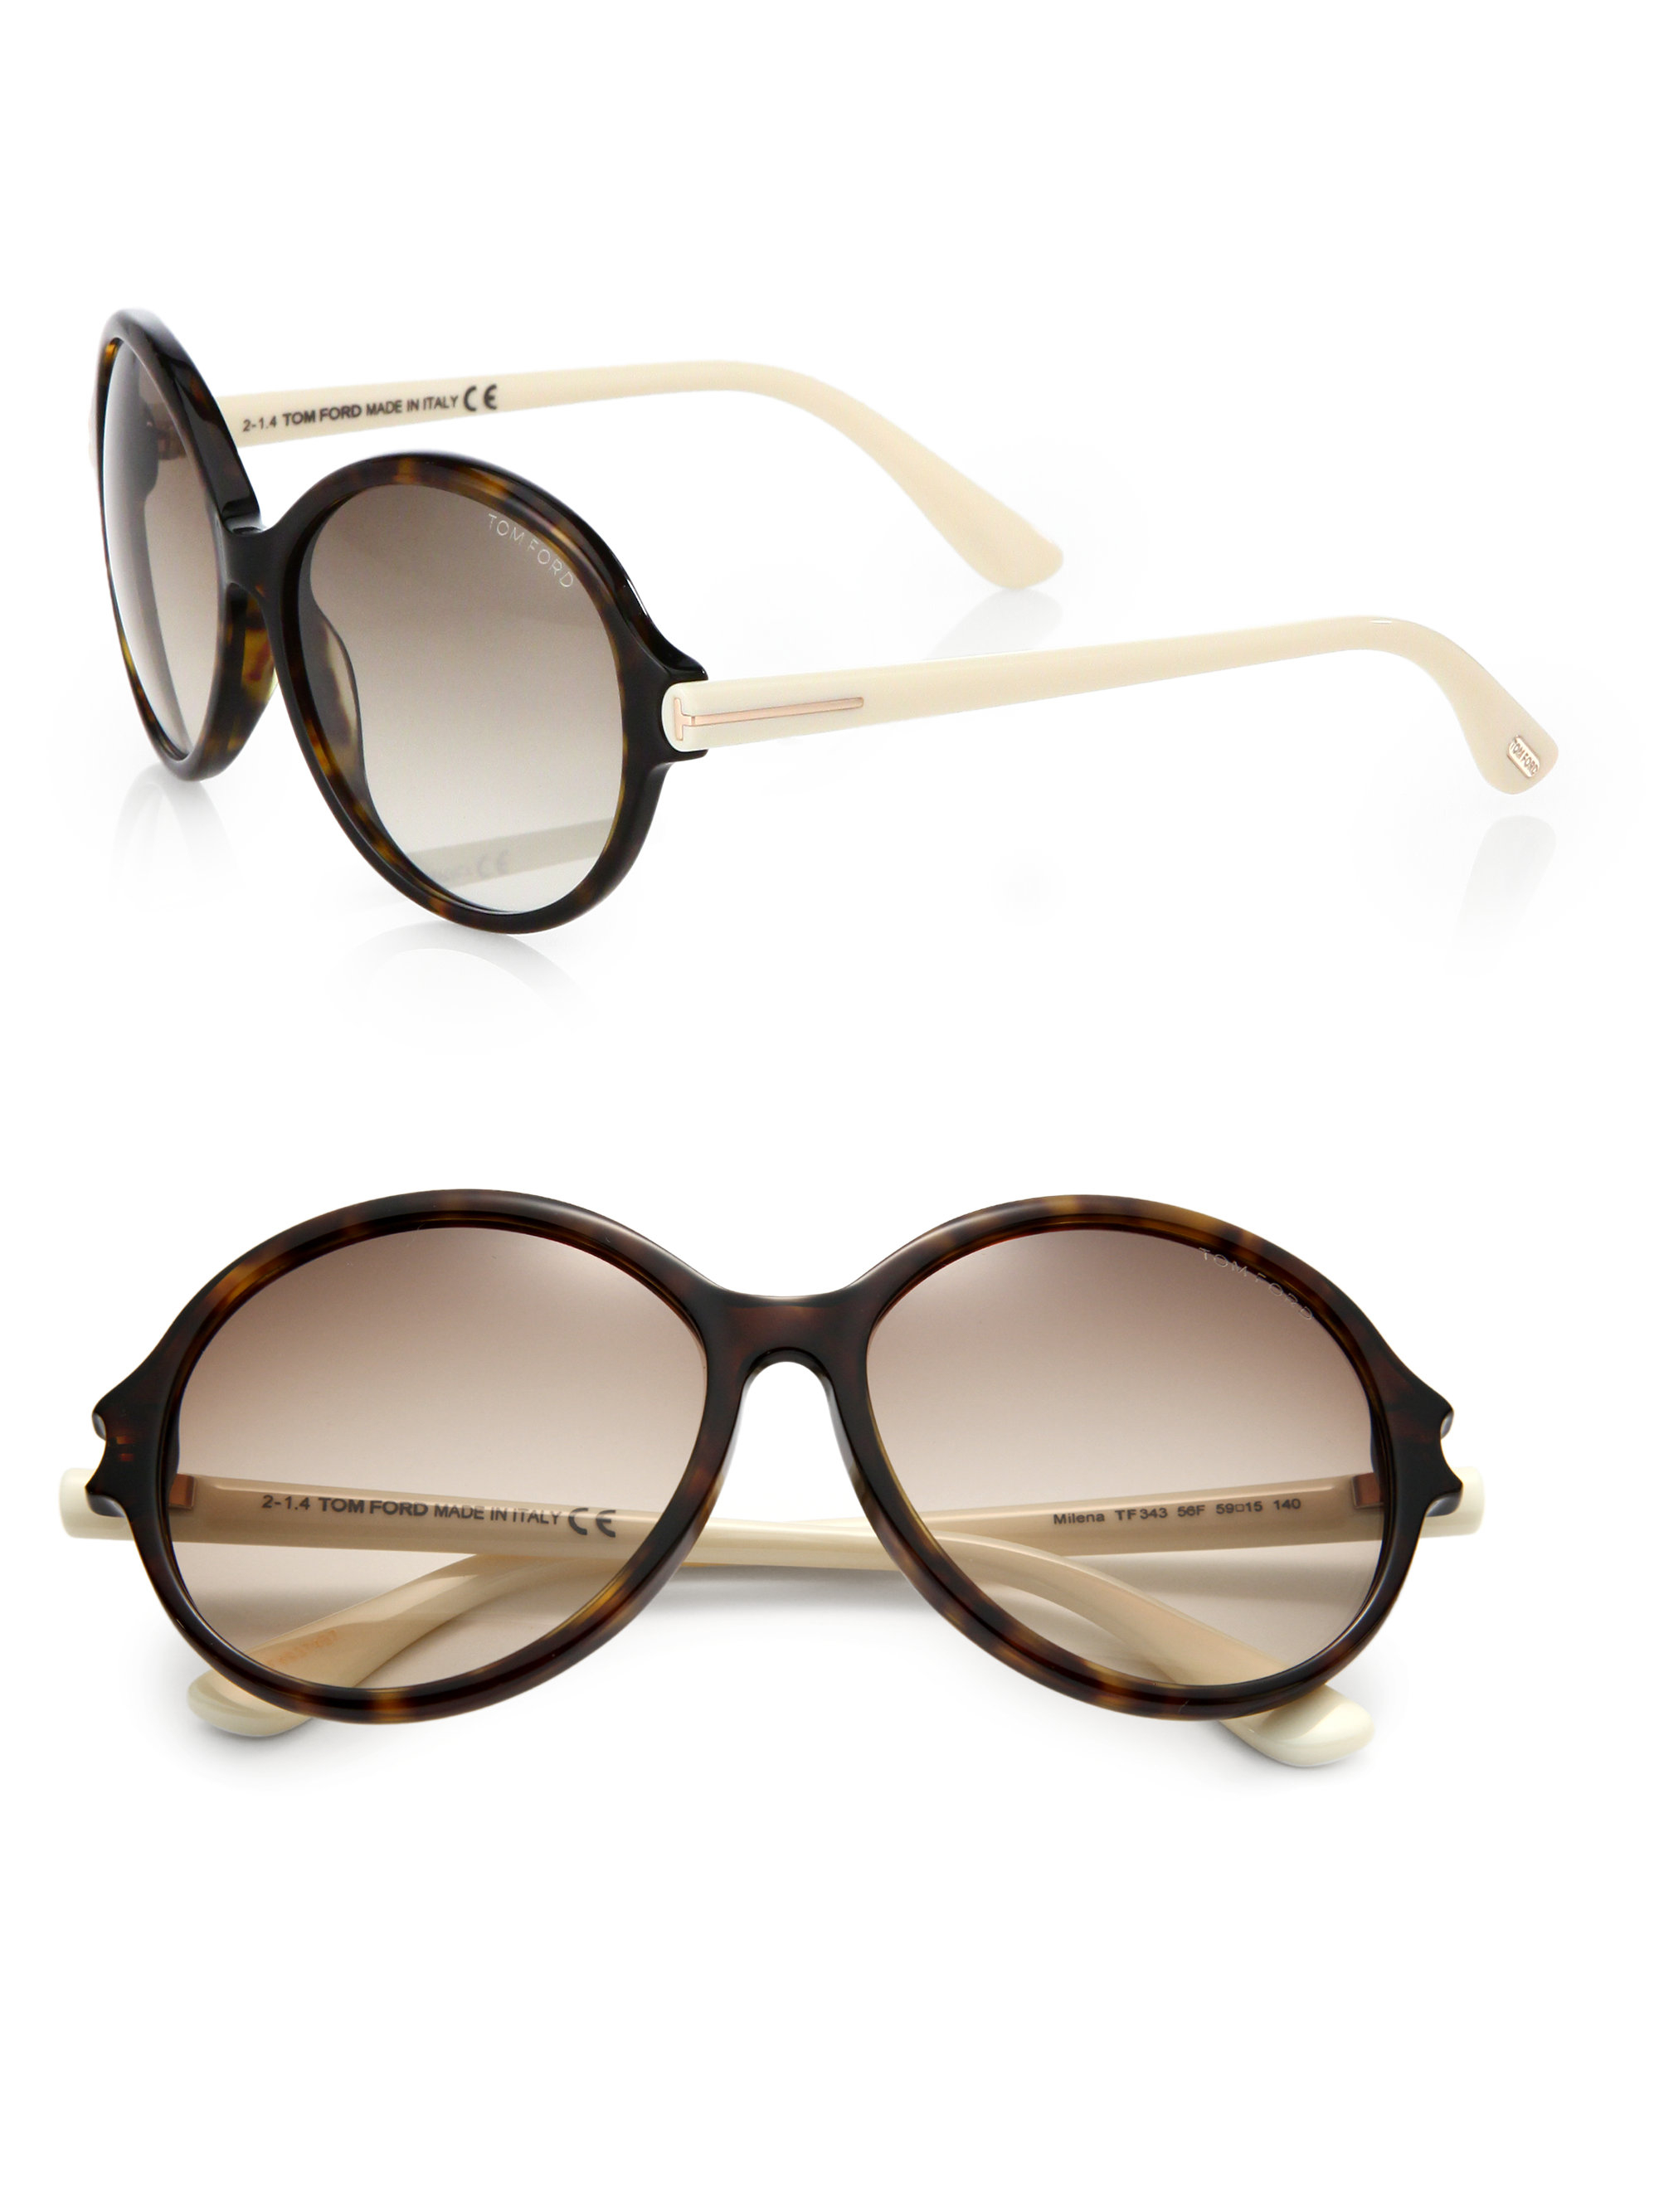 052b8807520 Lyst - Tom Ford Milena Round Sunglasses in Brown